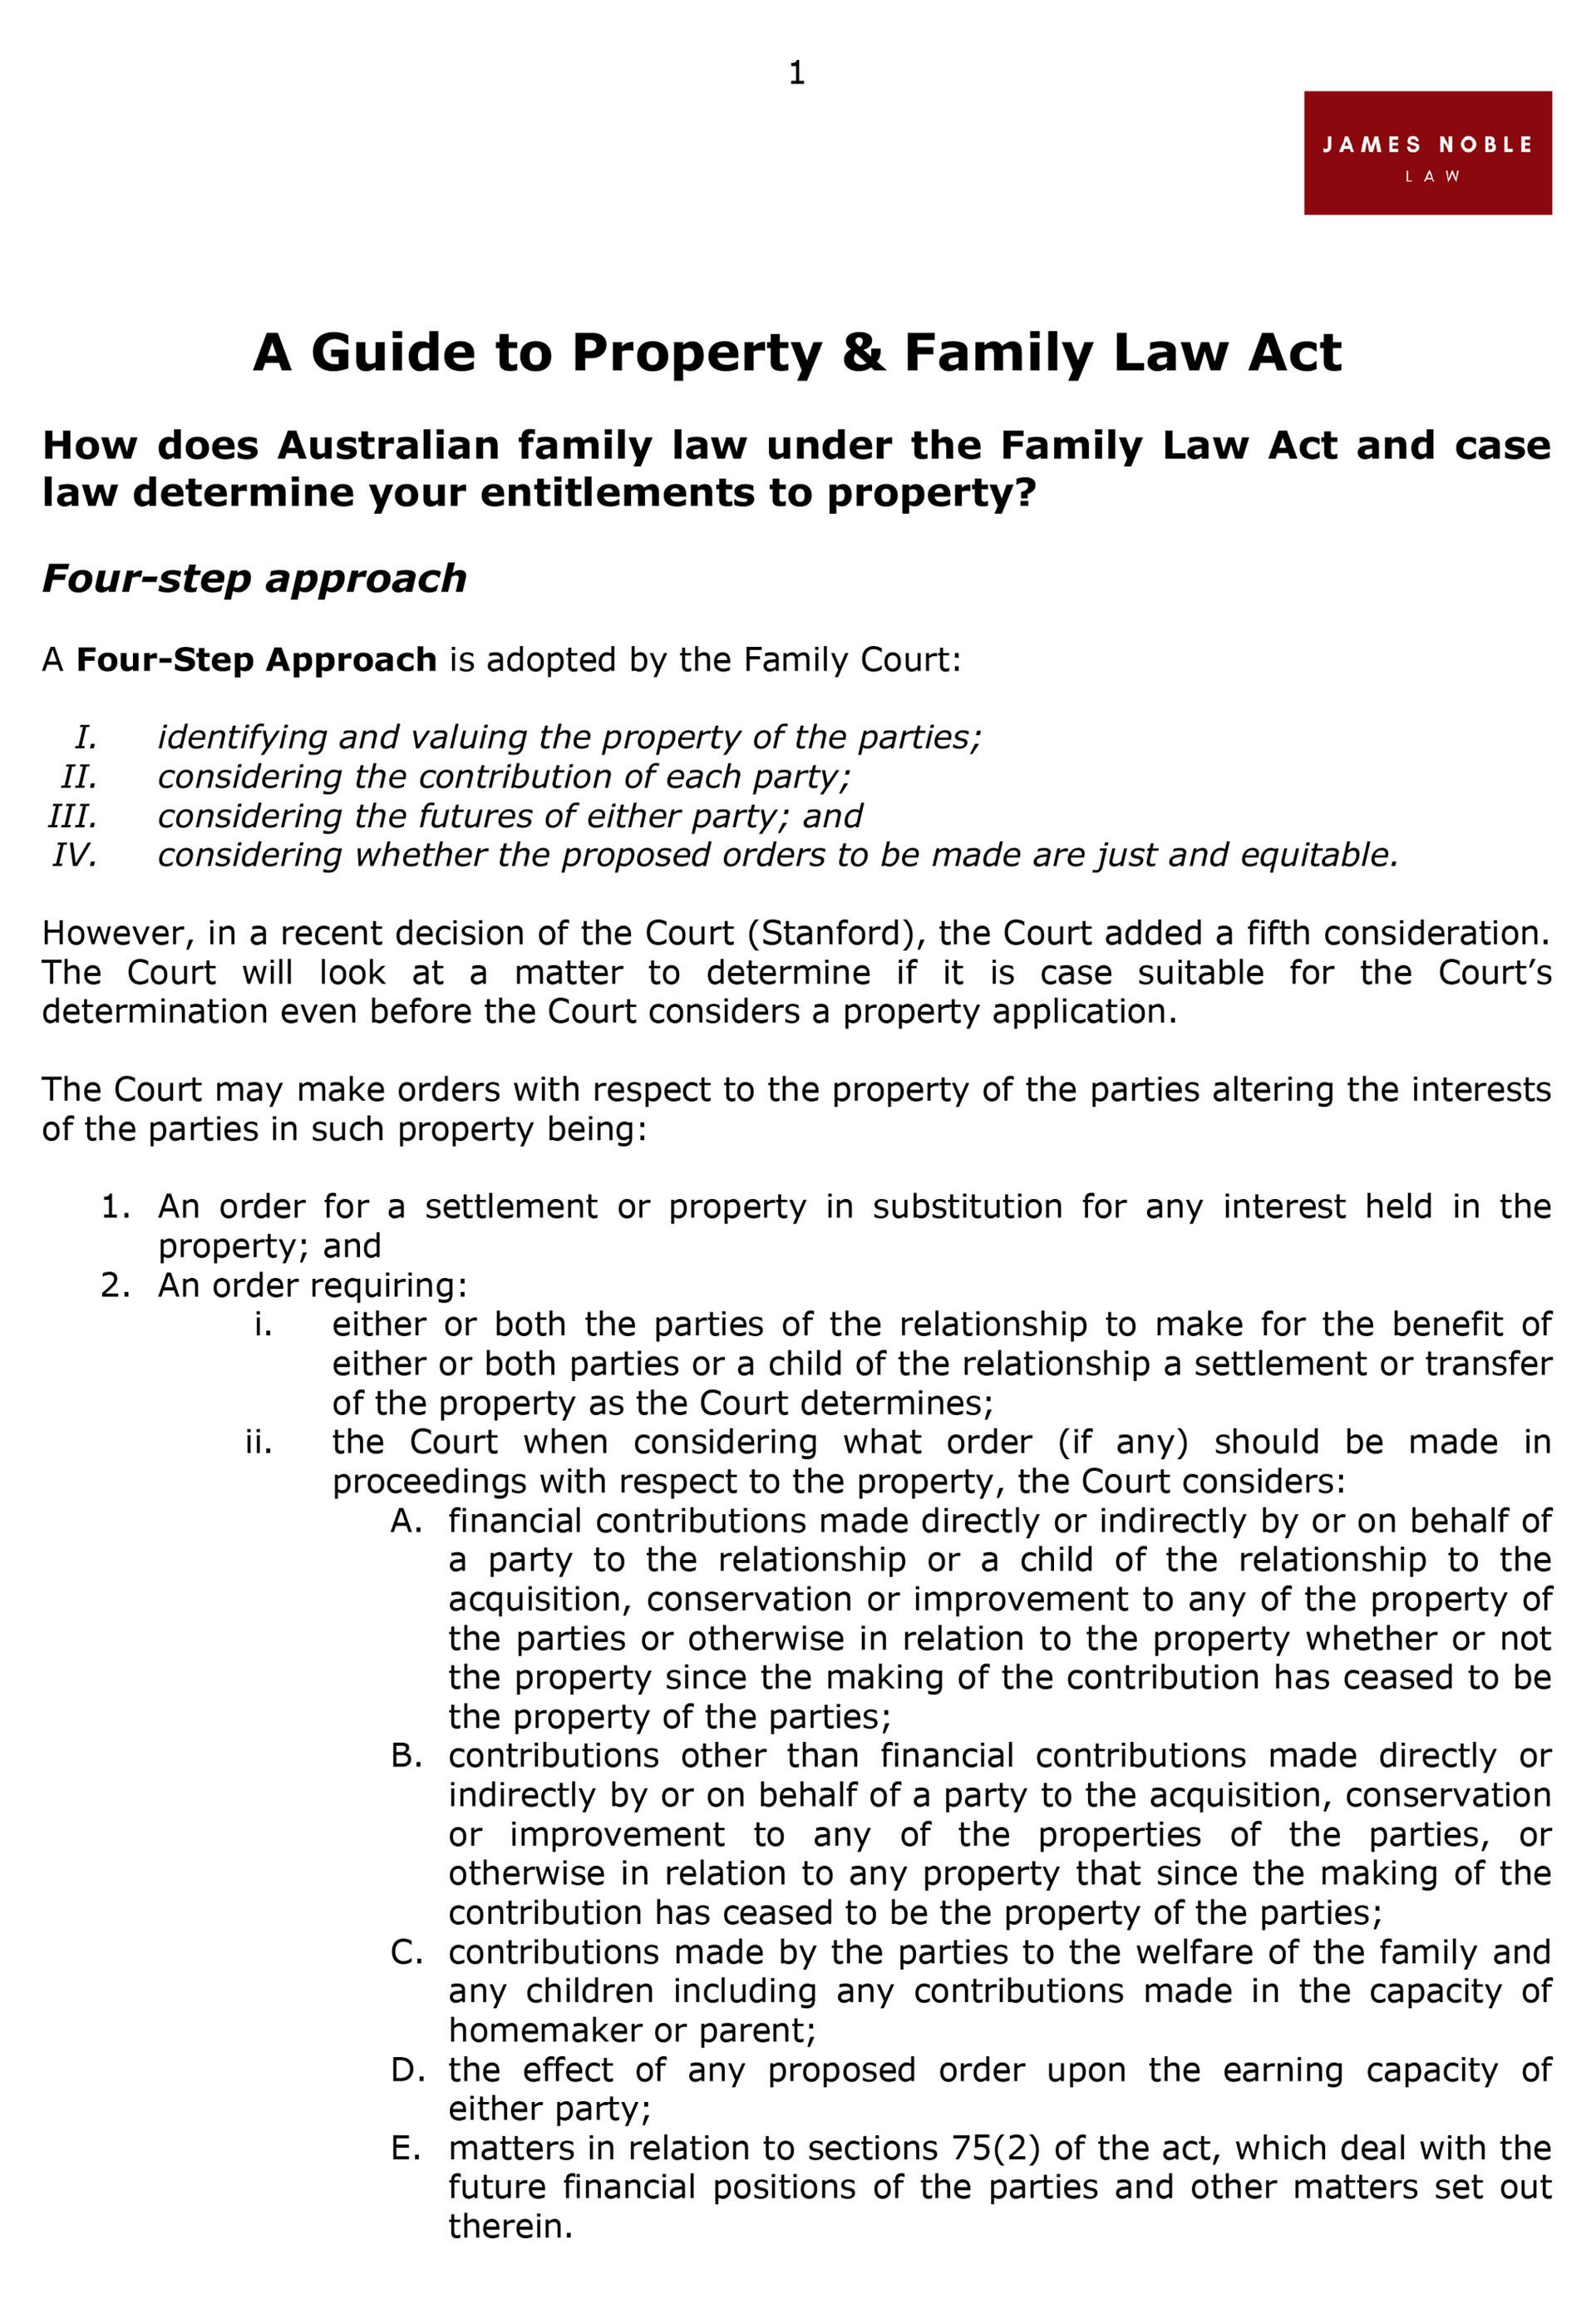 a-guide-to-property-family-law-act-paper-download